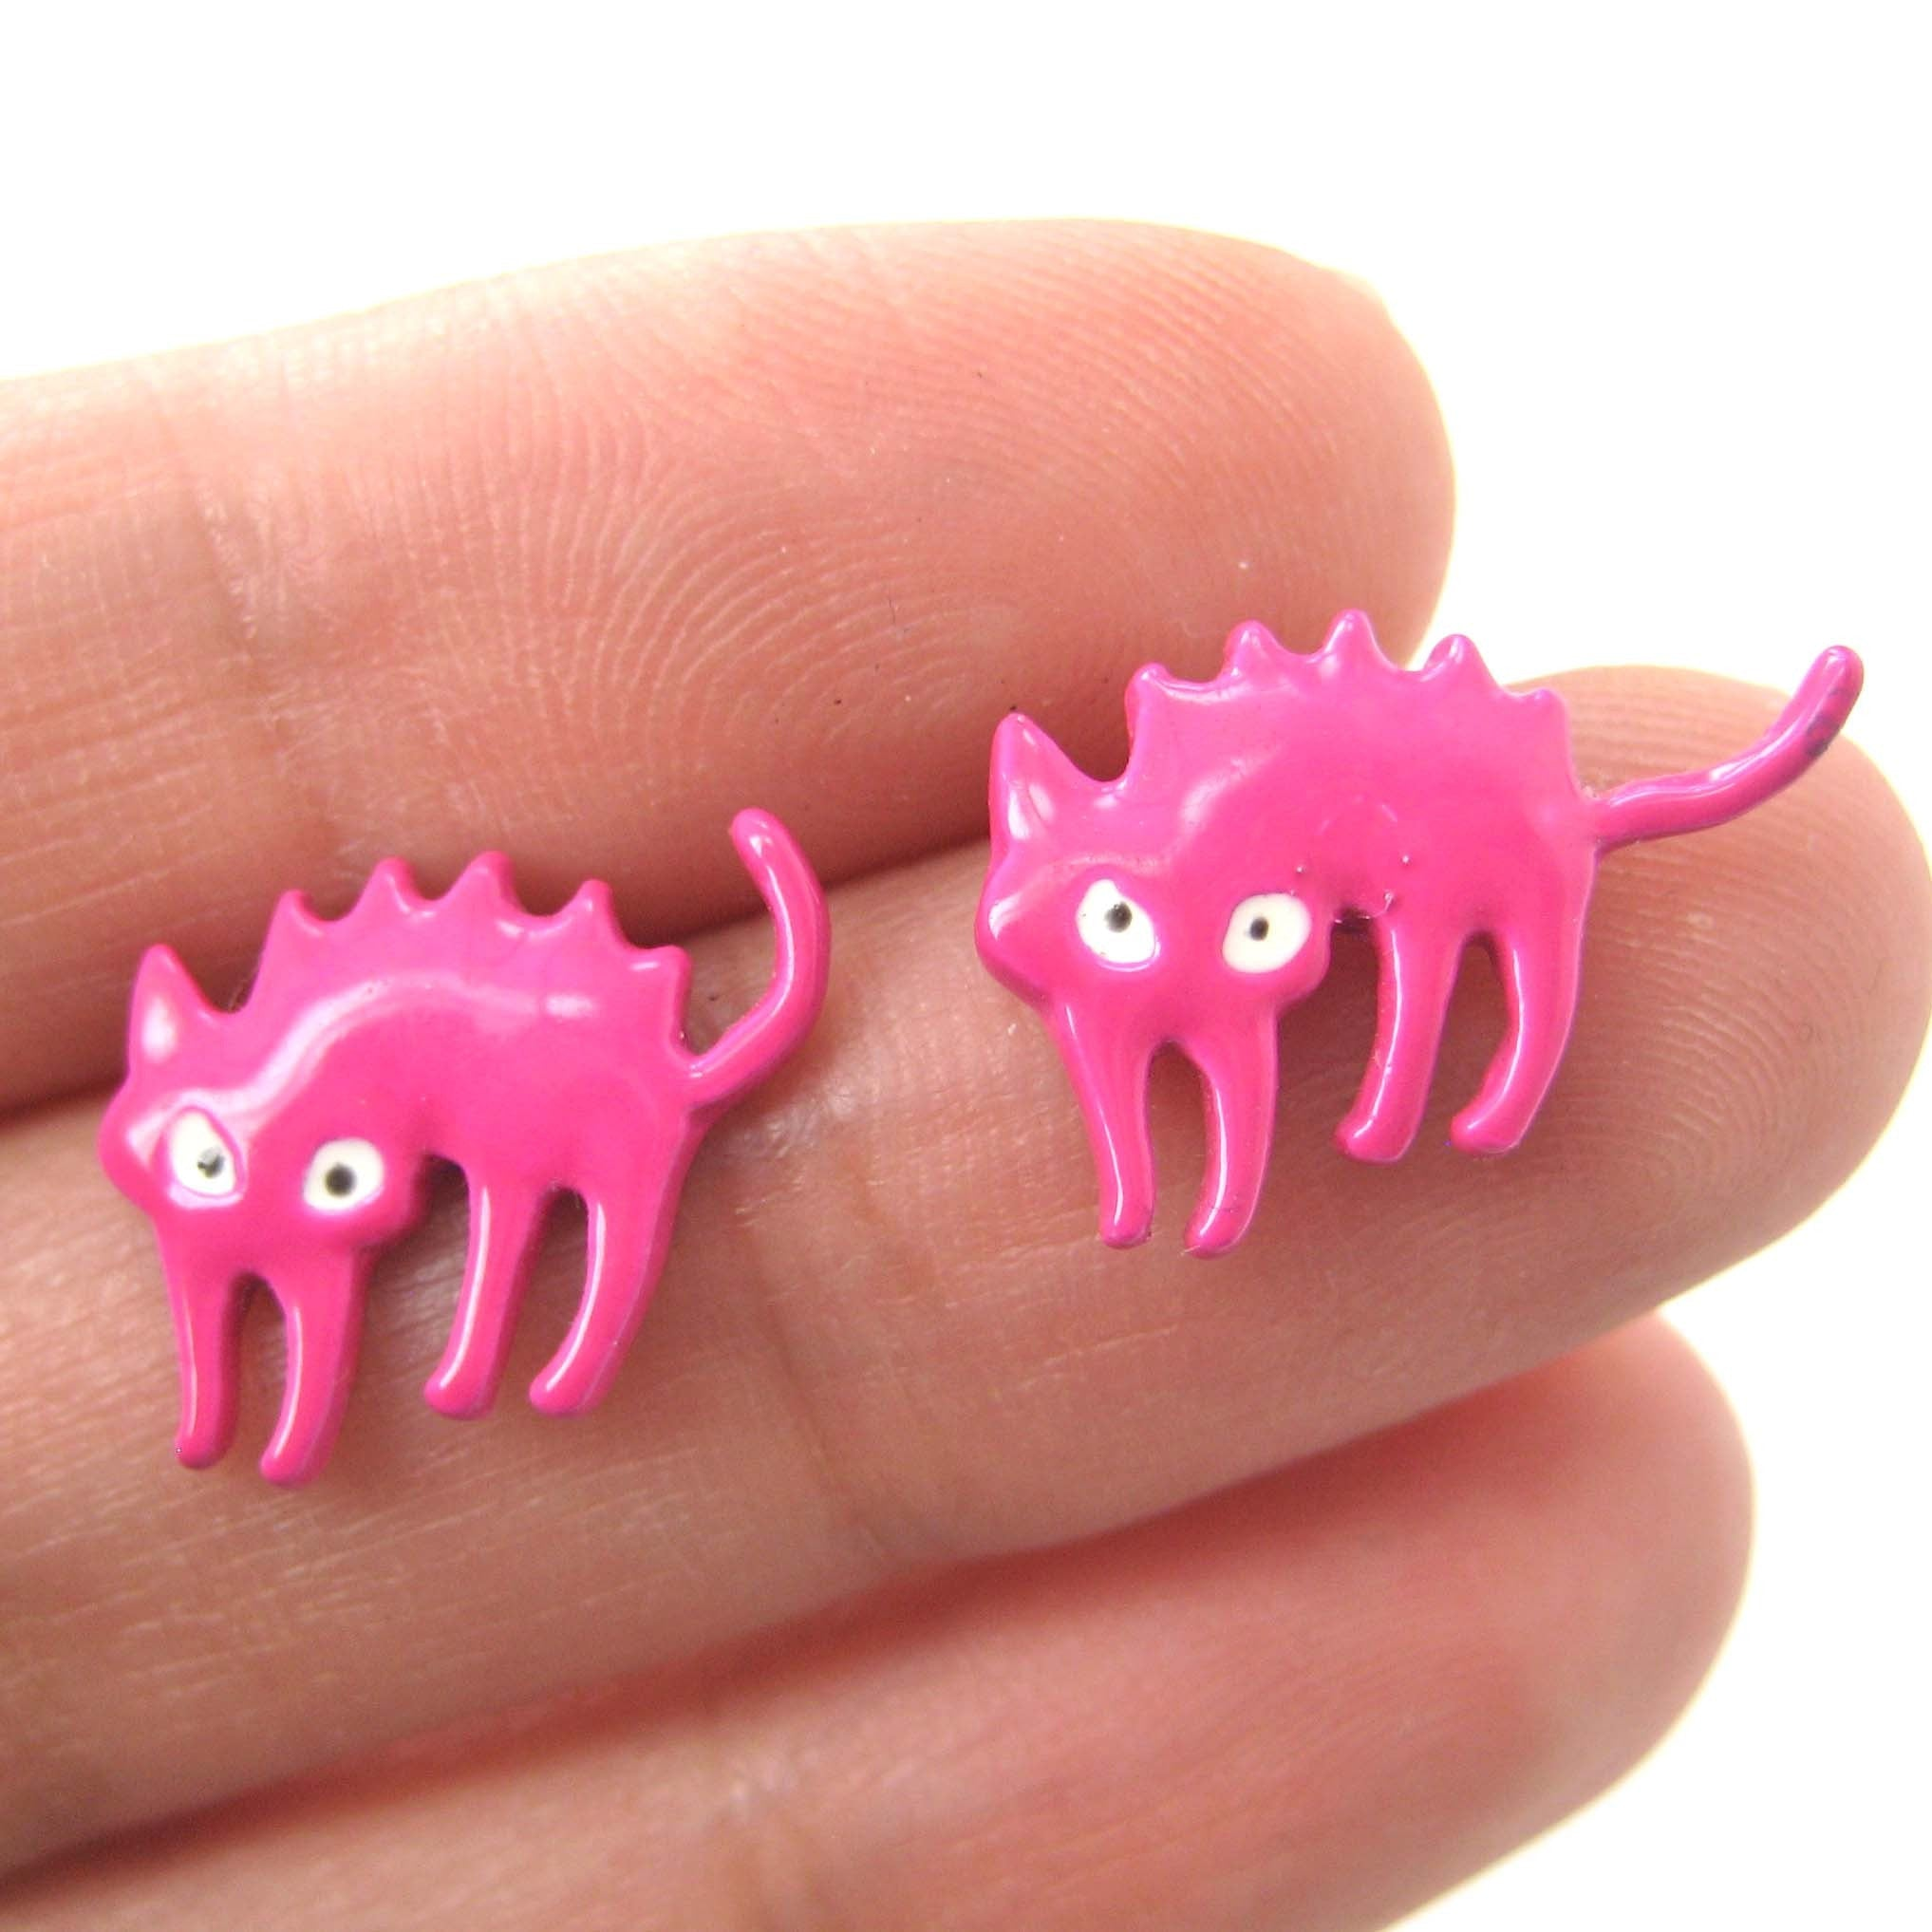 petrified-scaredy-kitty-cat-animal-stud-earrings-in-pink-dotoly